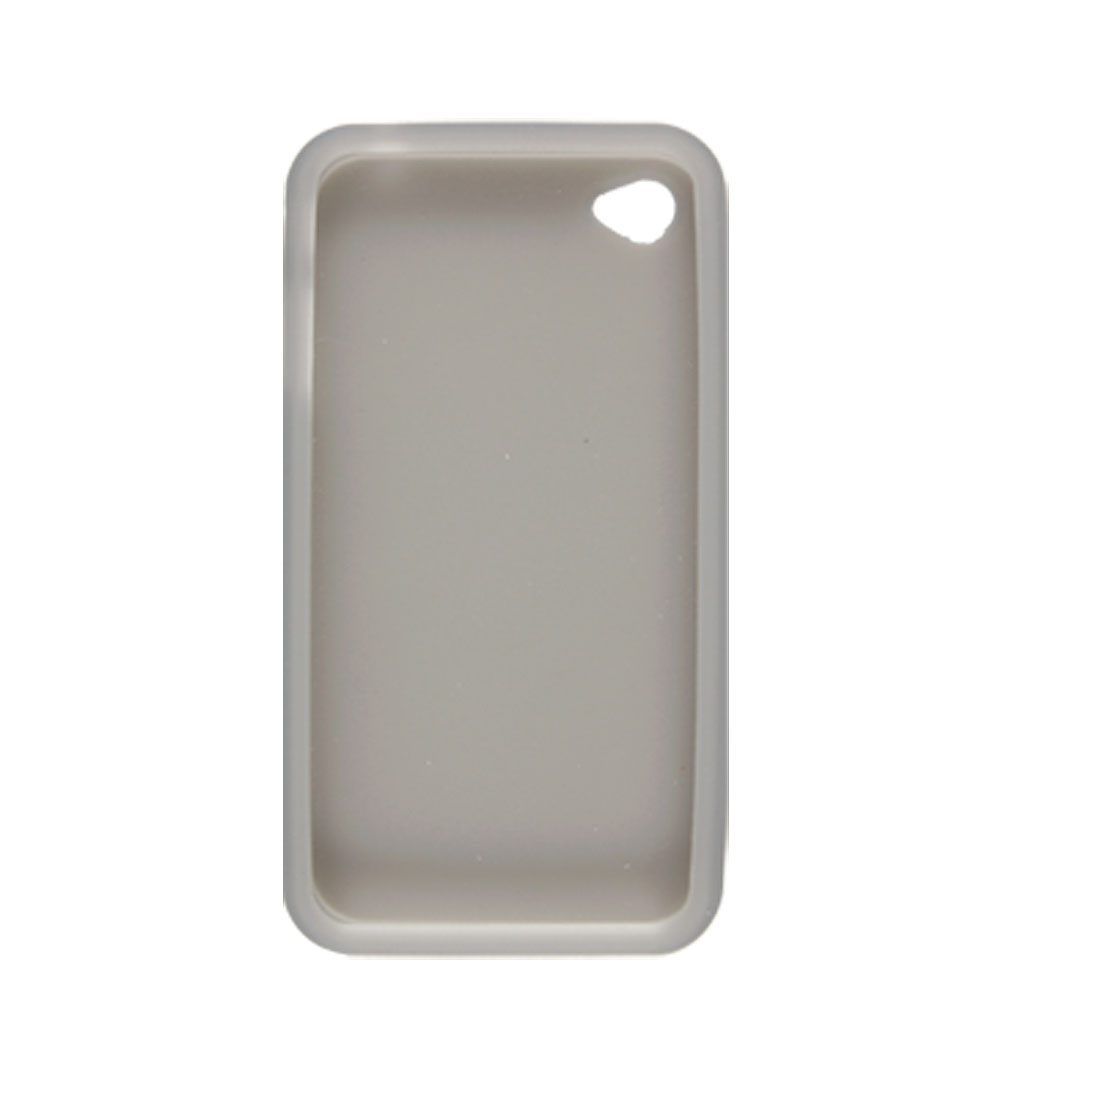 Gray Silicone Skin Case + Screen Guard for Apple iPhone 4 4G